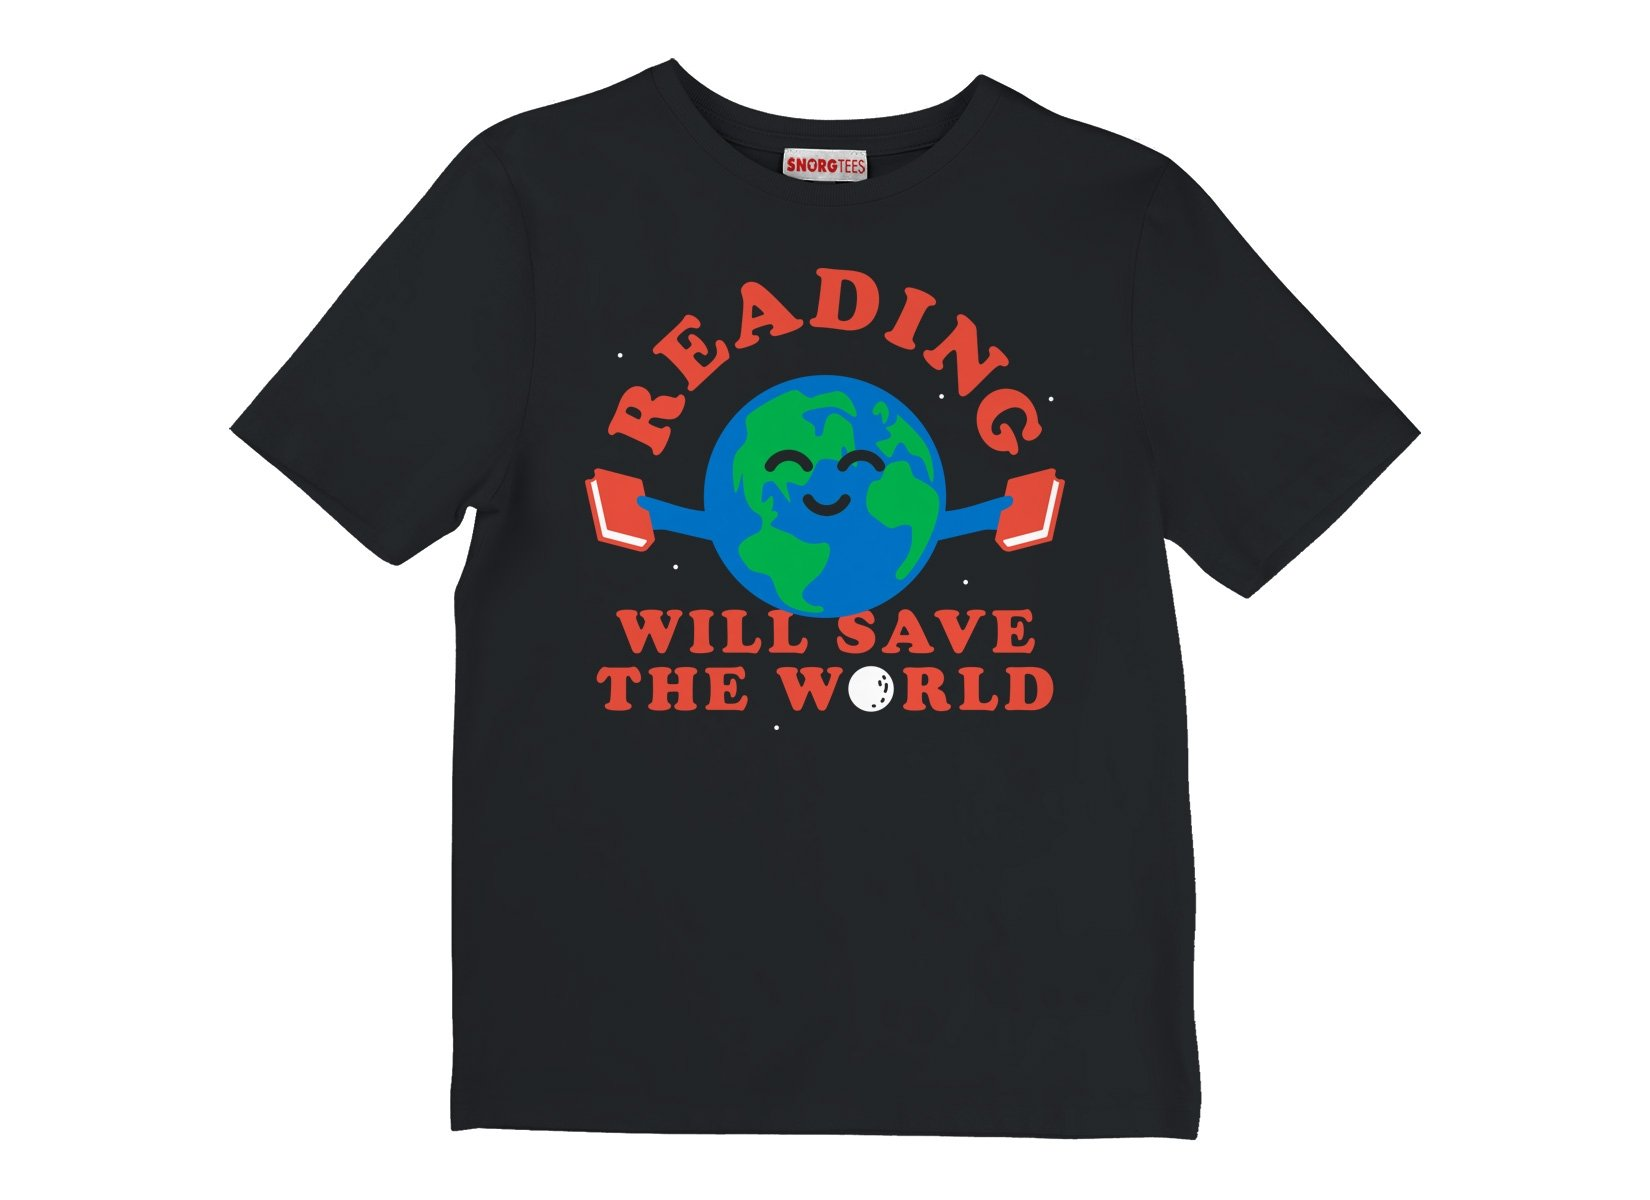 Reading Will Save The World on Kids T-Shirt